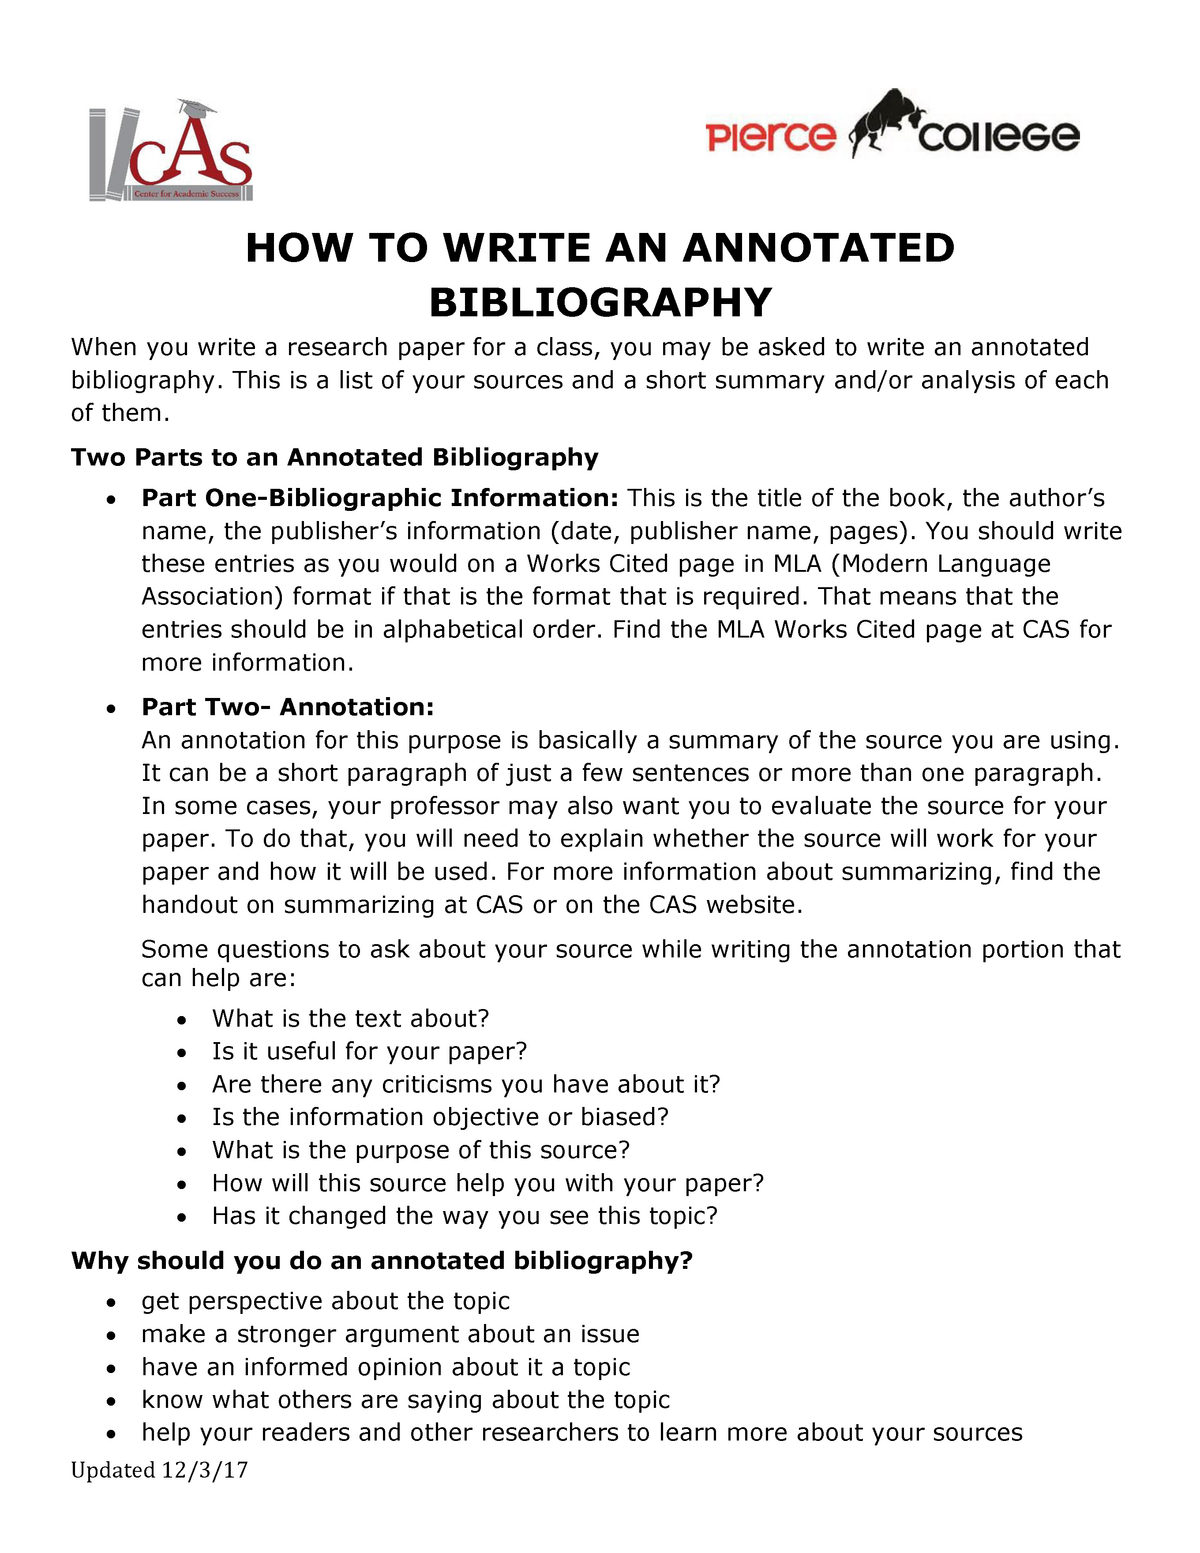 How to right an annotated bibliography